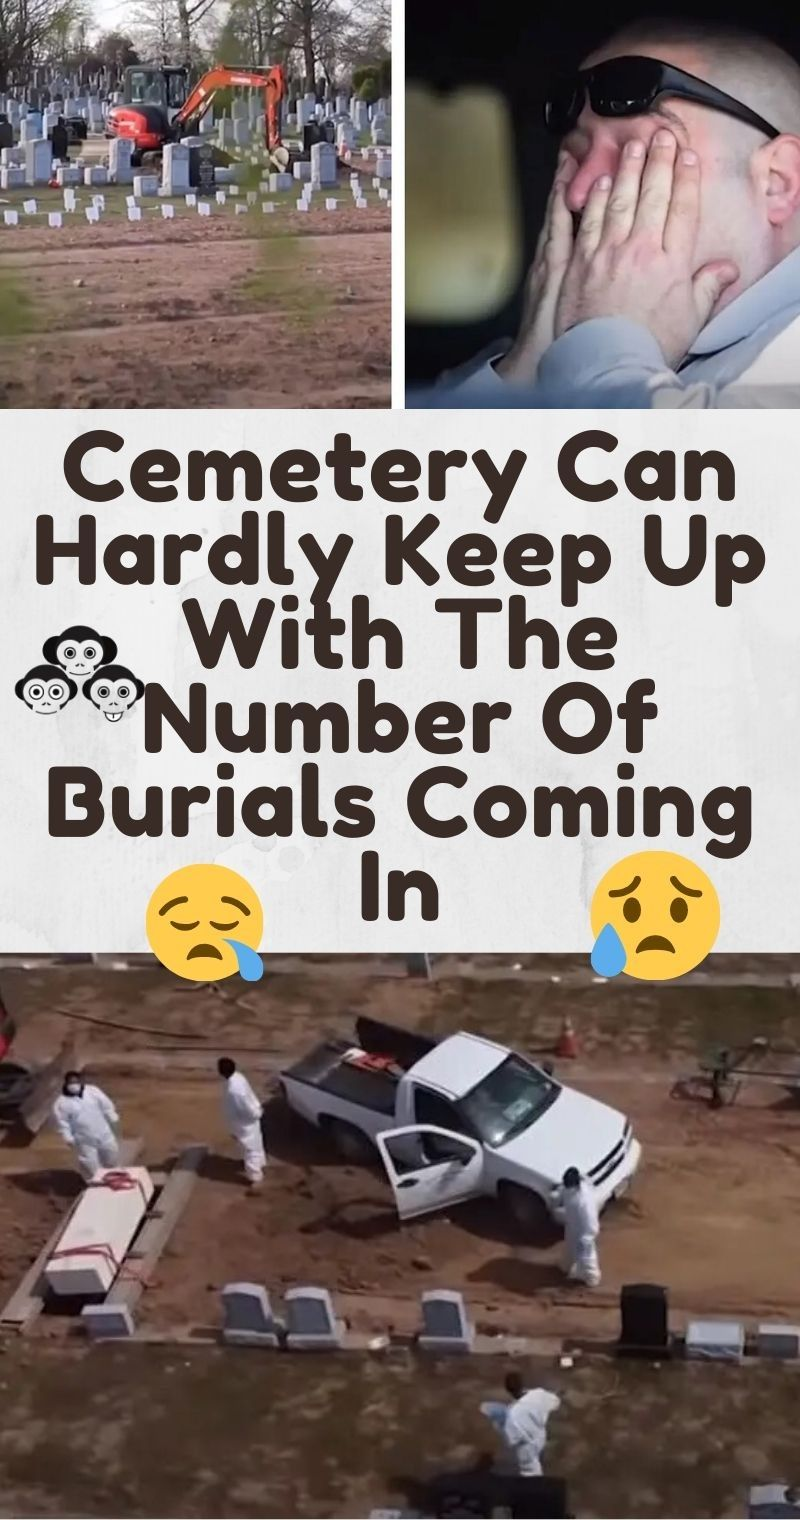 Cemetery can hardly keep up with the number of burials